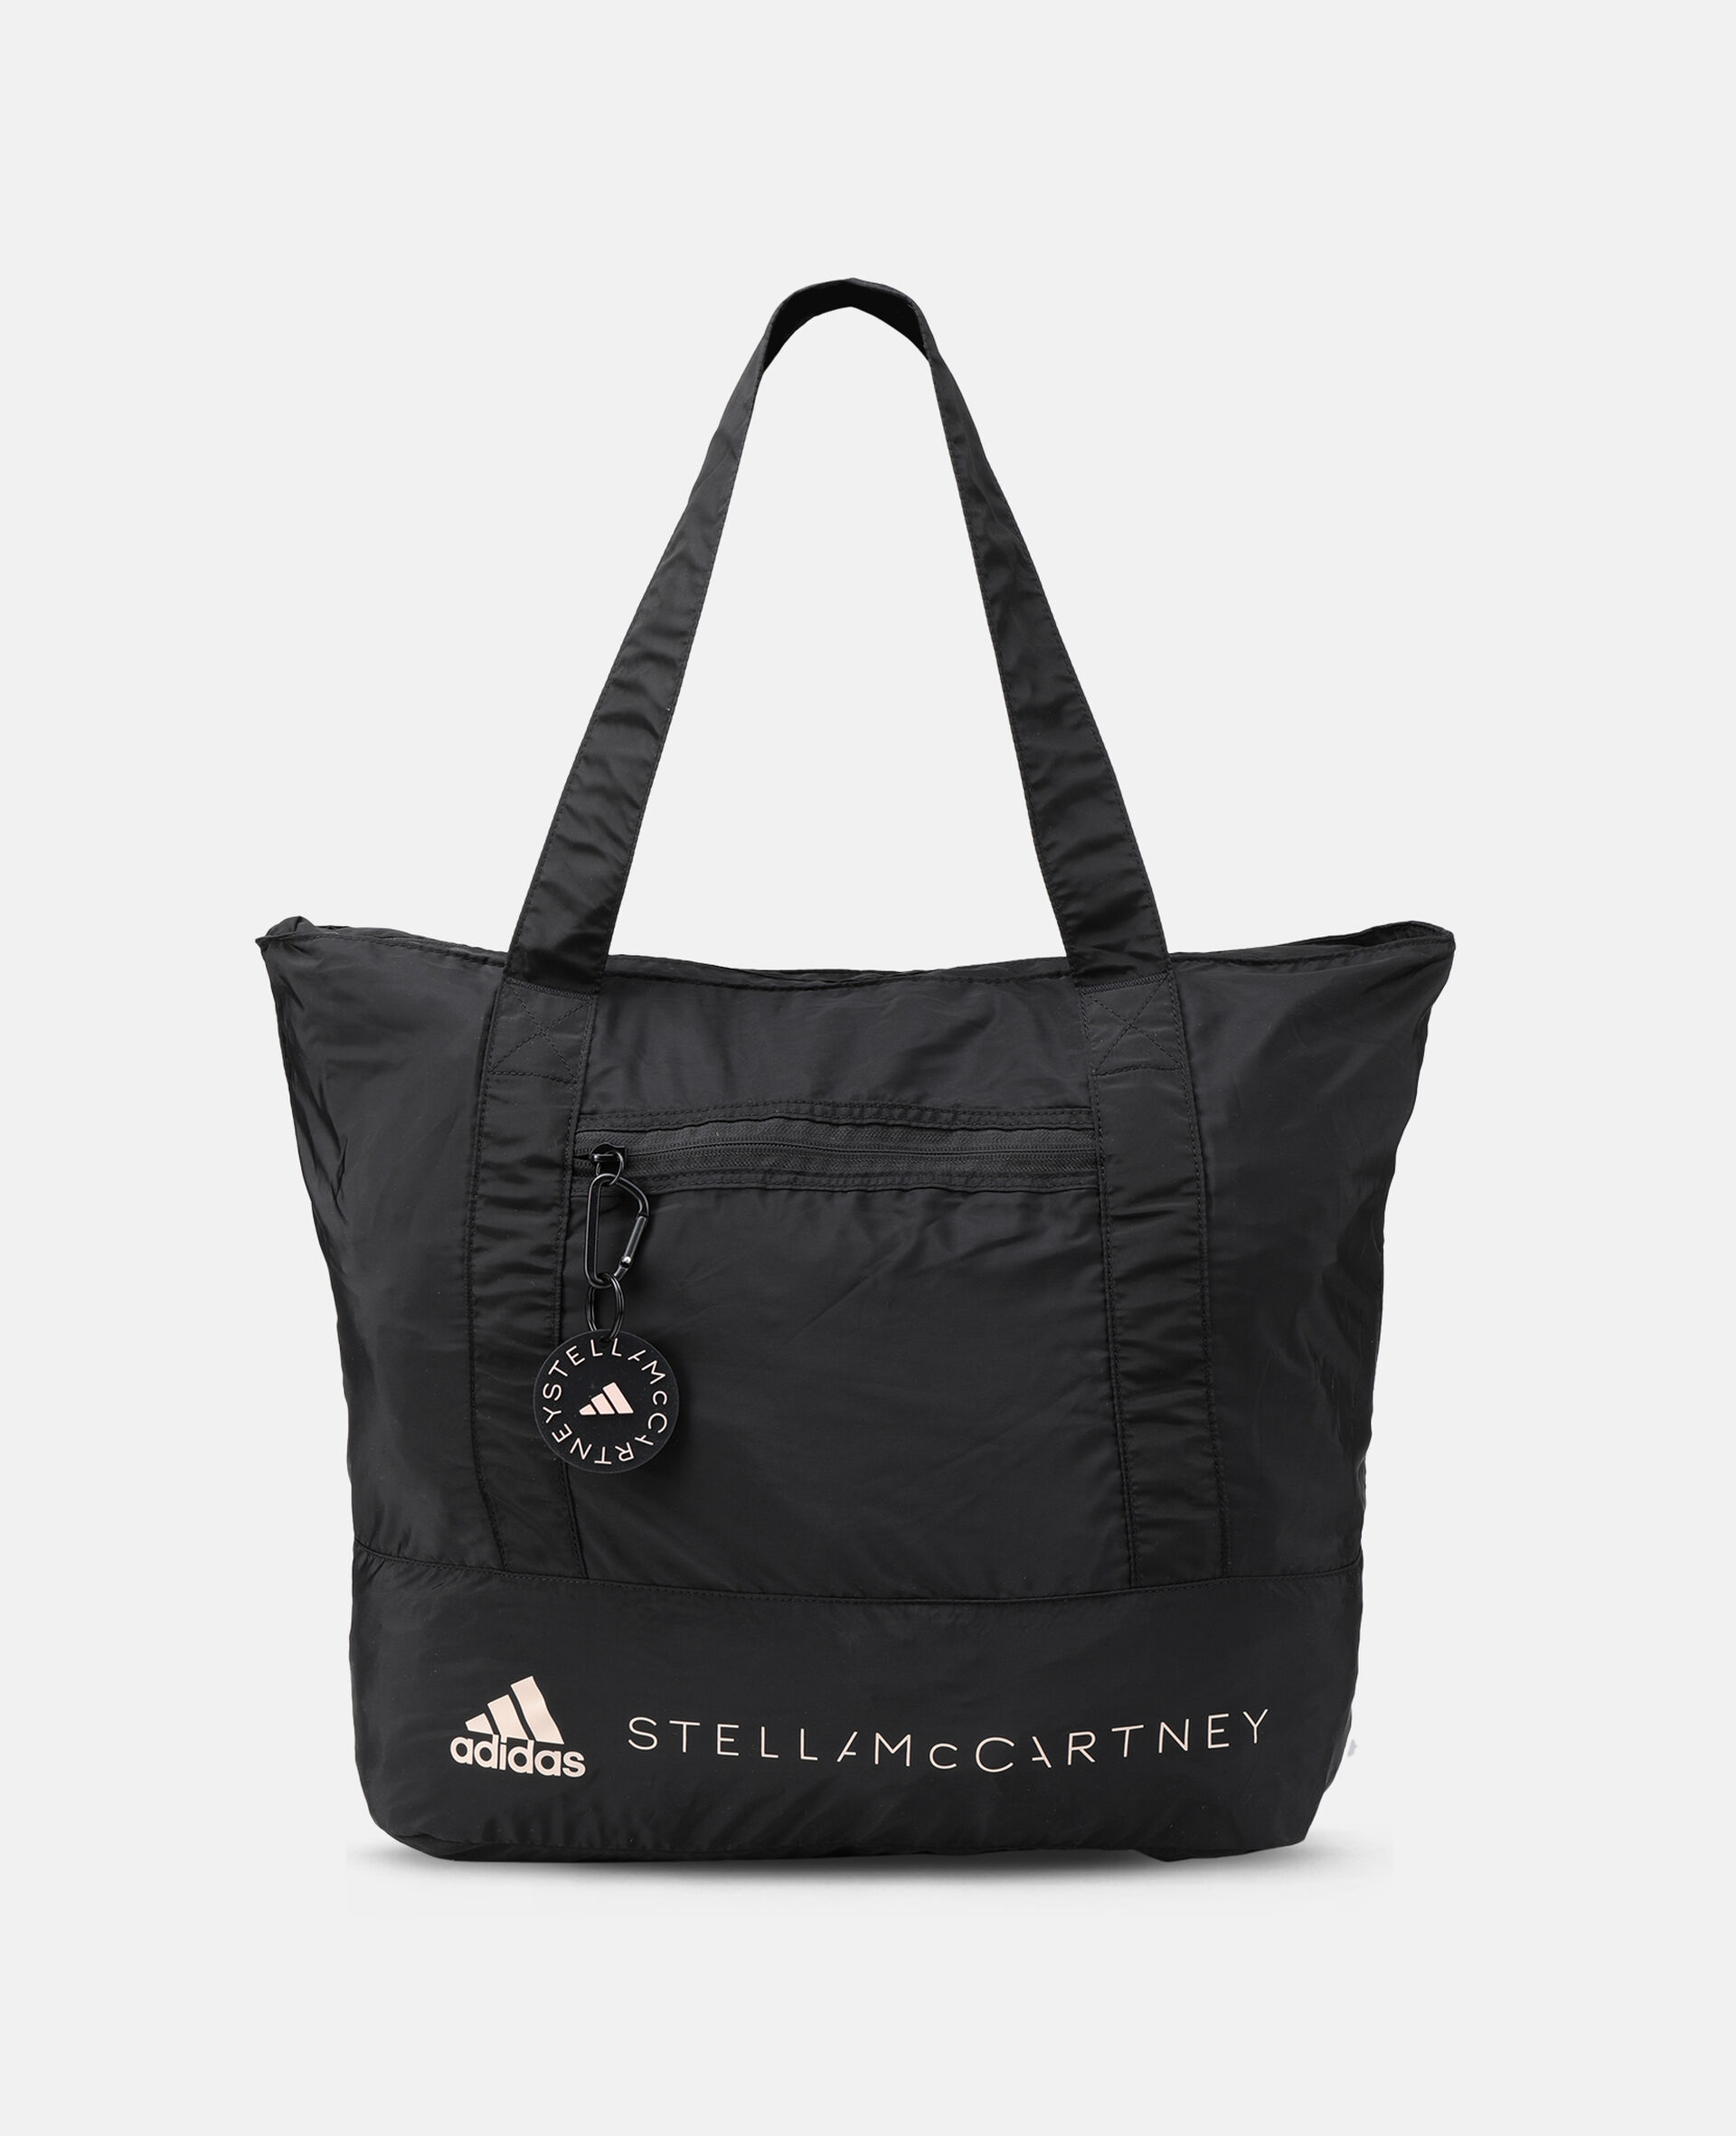 Black Printed Tote Bag -Black-large image number 0